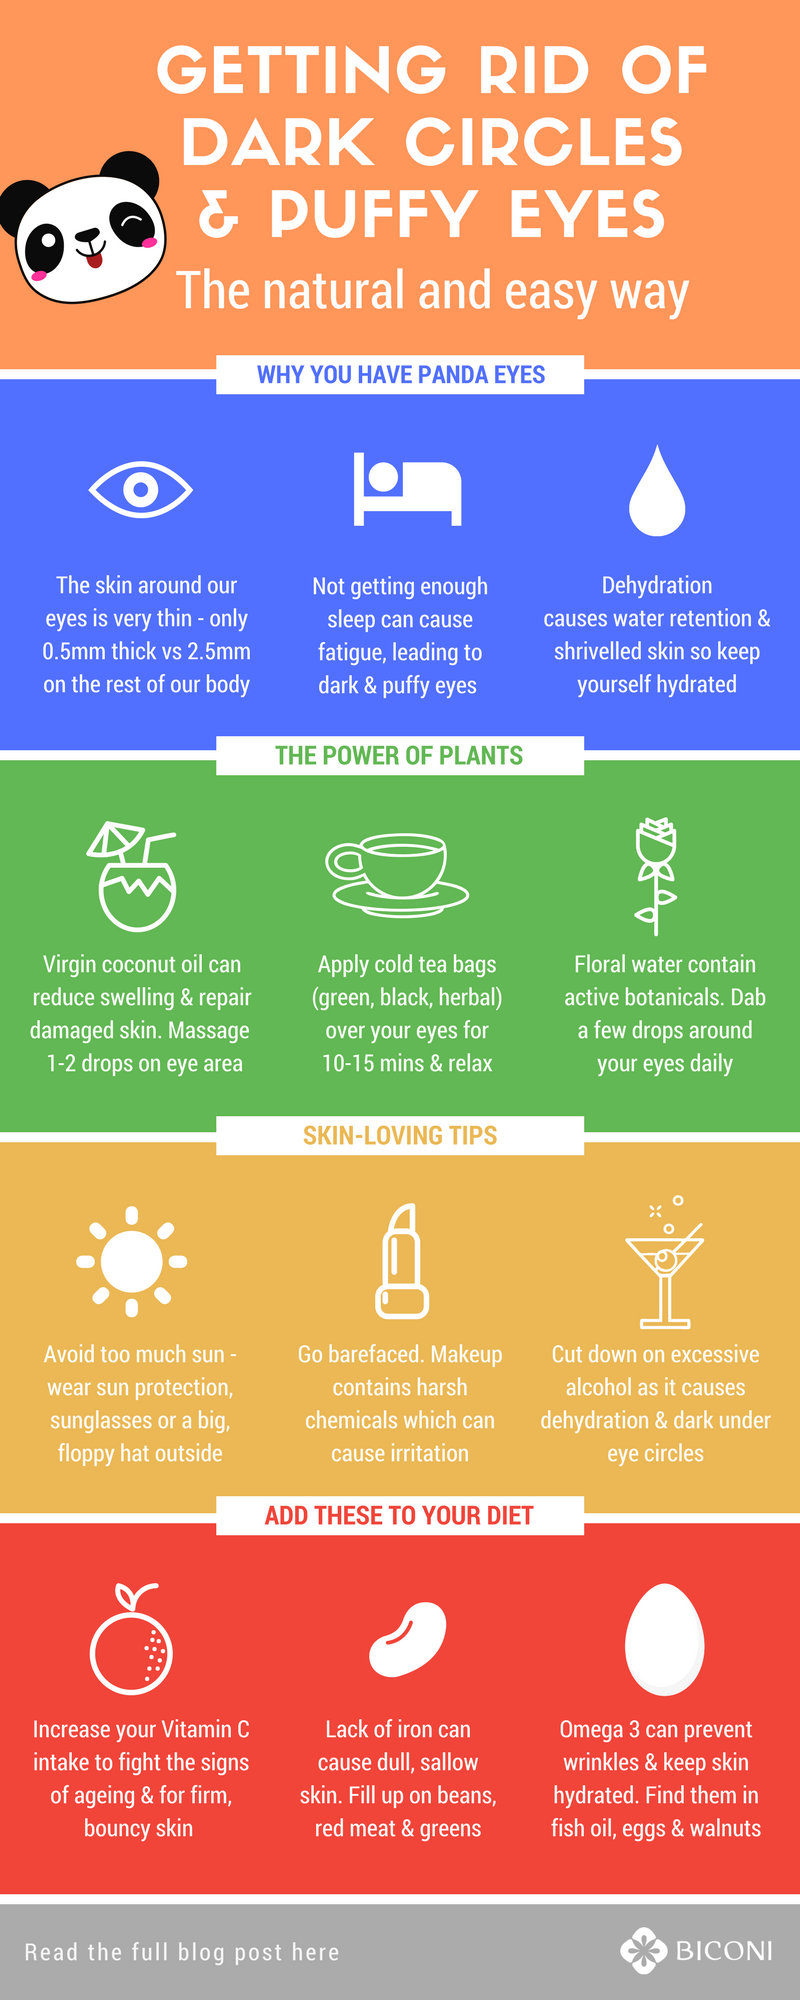 Infograph - Getting rid of dark circles and puffy eyes the natural and easy way